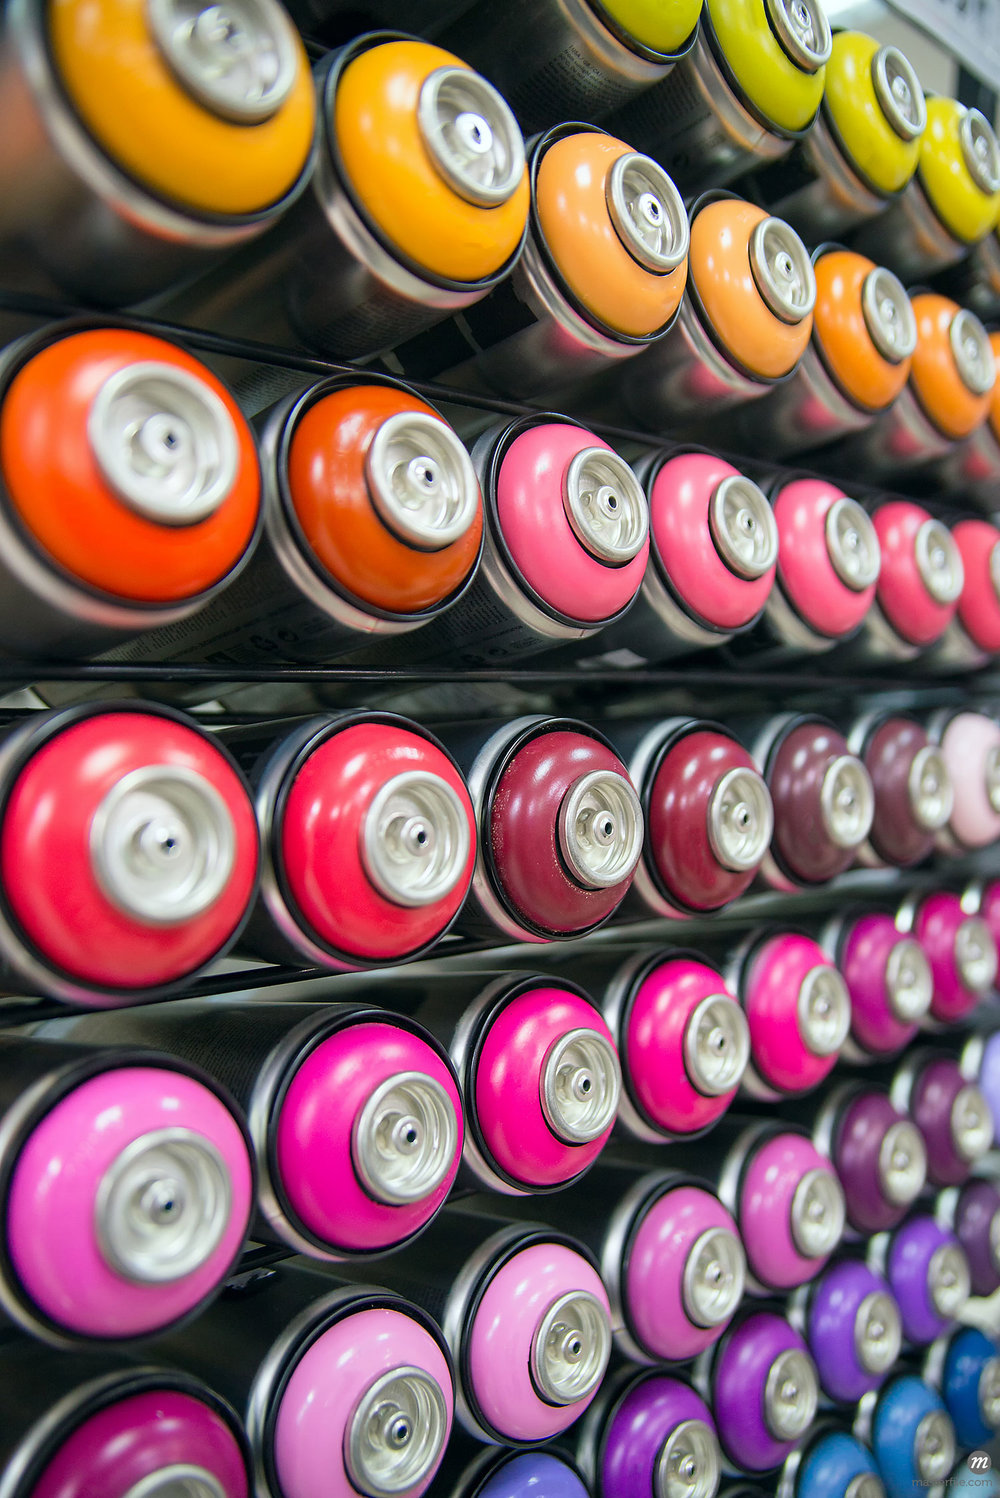 Colorful cans of spray paint in rows on a shelf © mila103 / Masterfile